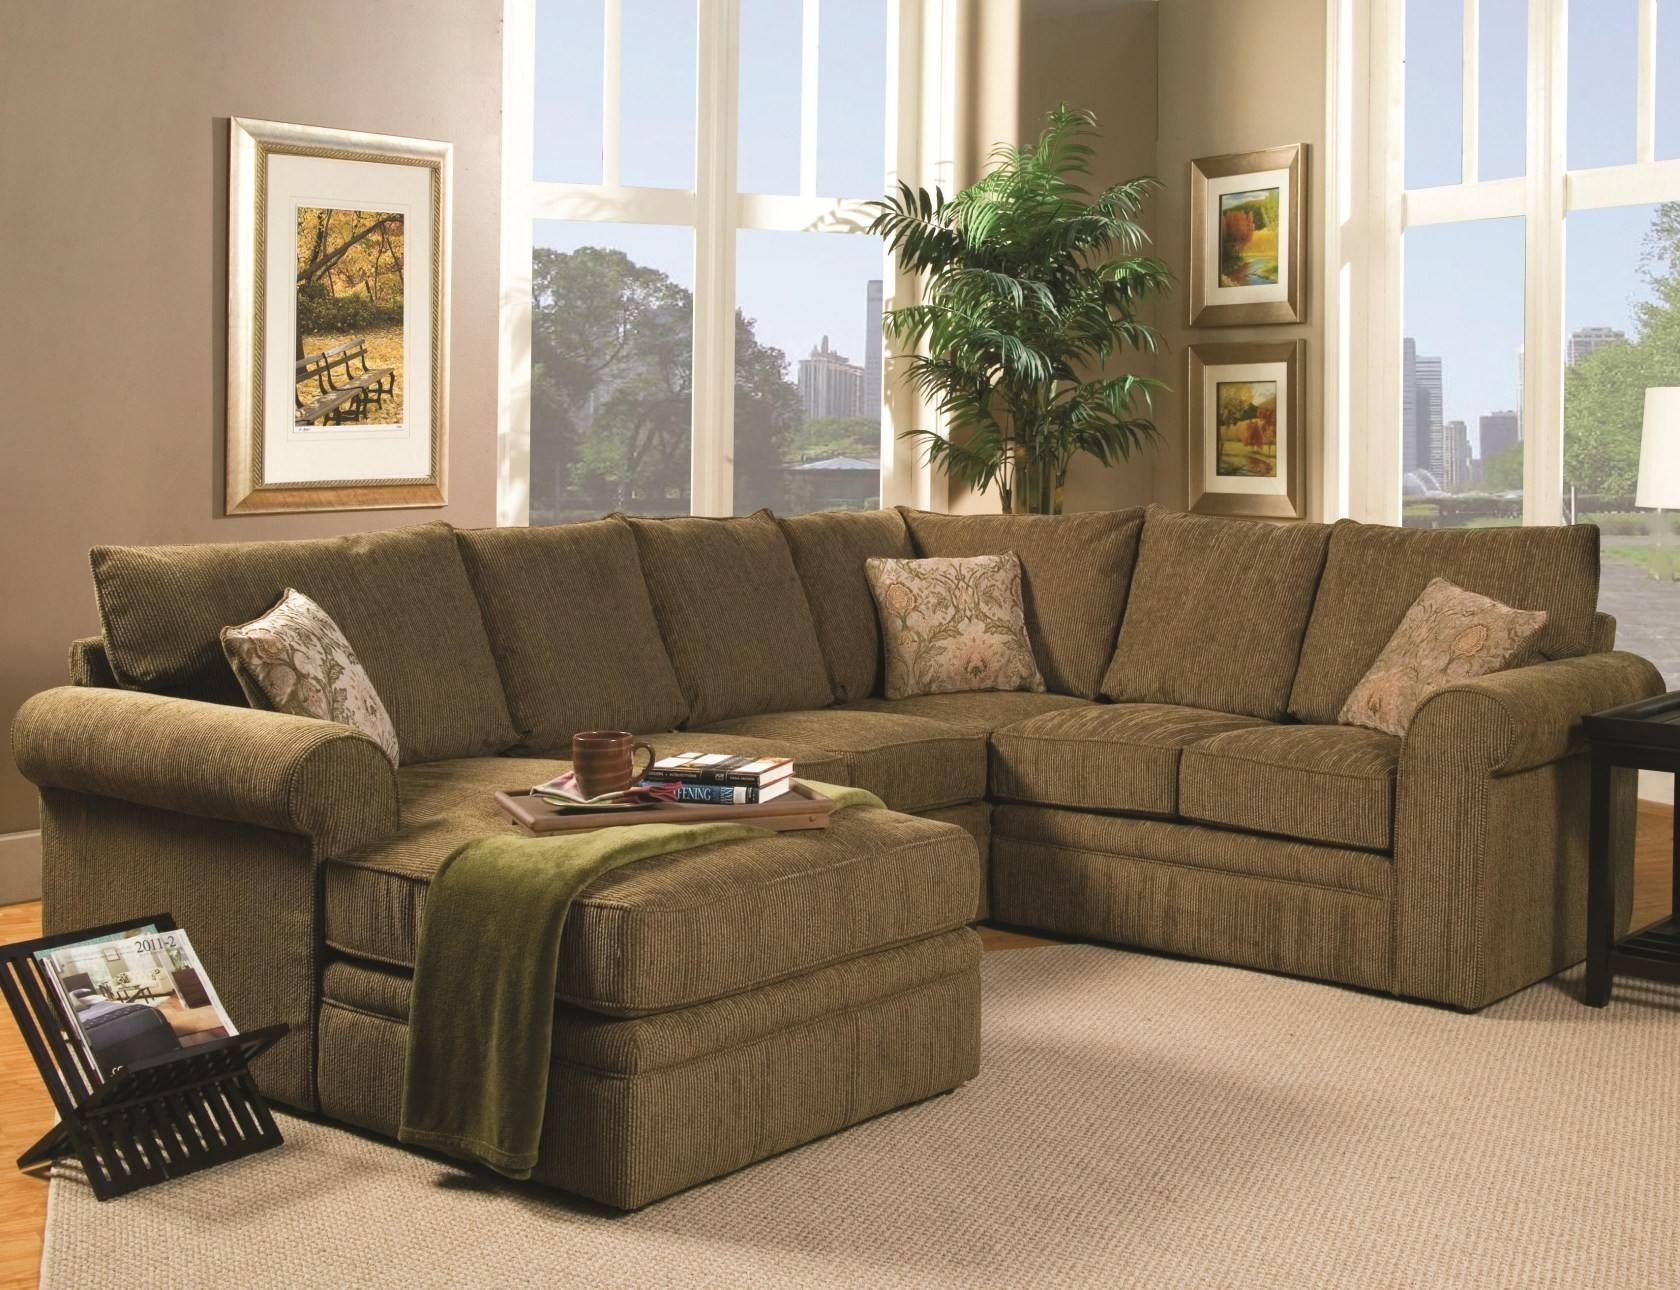 Brown Sectional Couch.top Chocolate Brown Sectional Sofa With pertaining to Abbyson Living Charlotte Dark Brown Sectional Sofa and Ottoman (Image 8 of 30)